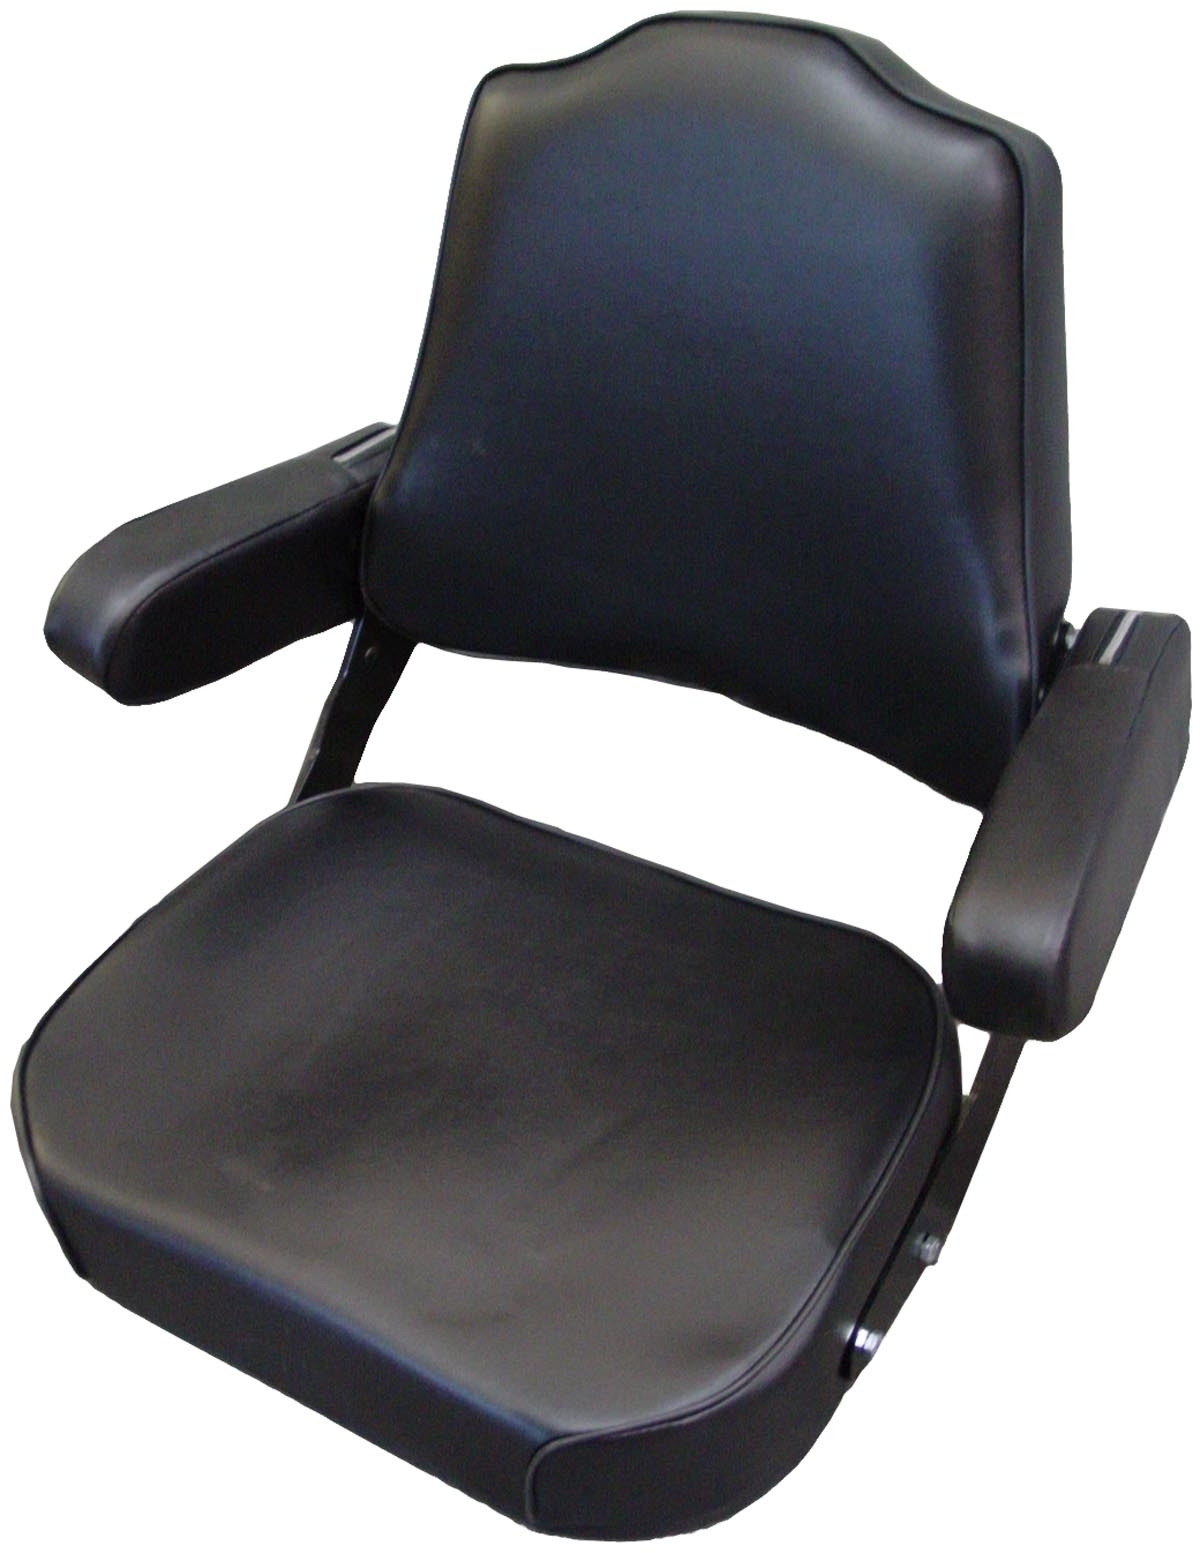 Seat Assembly With Armrests Restoration Quality Farmall